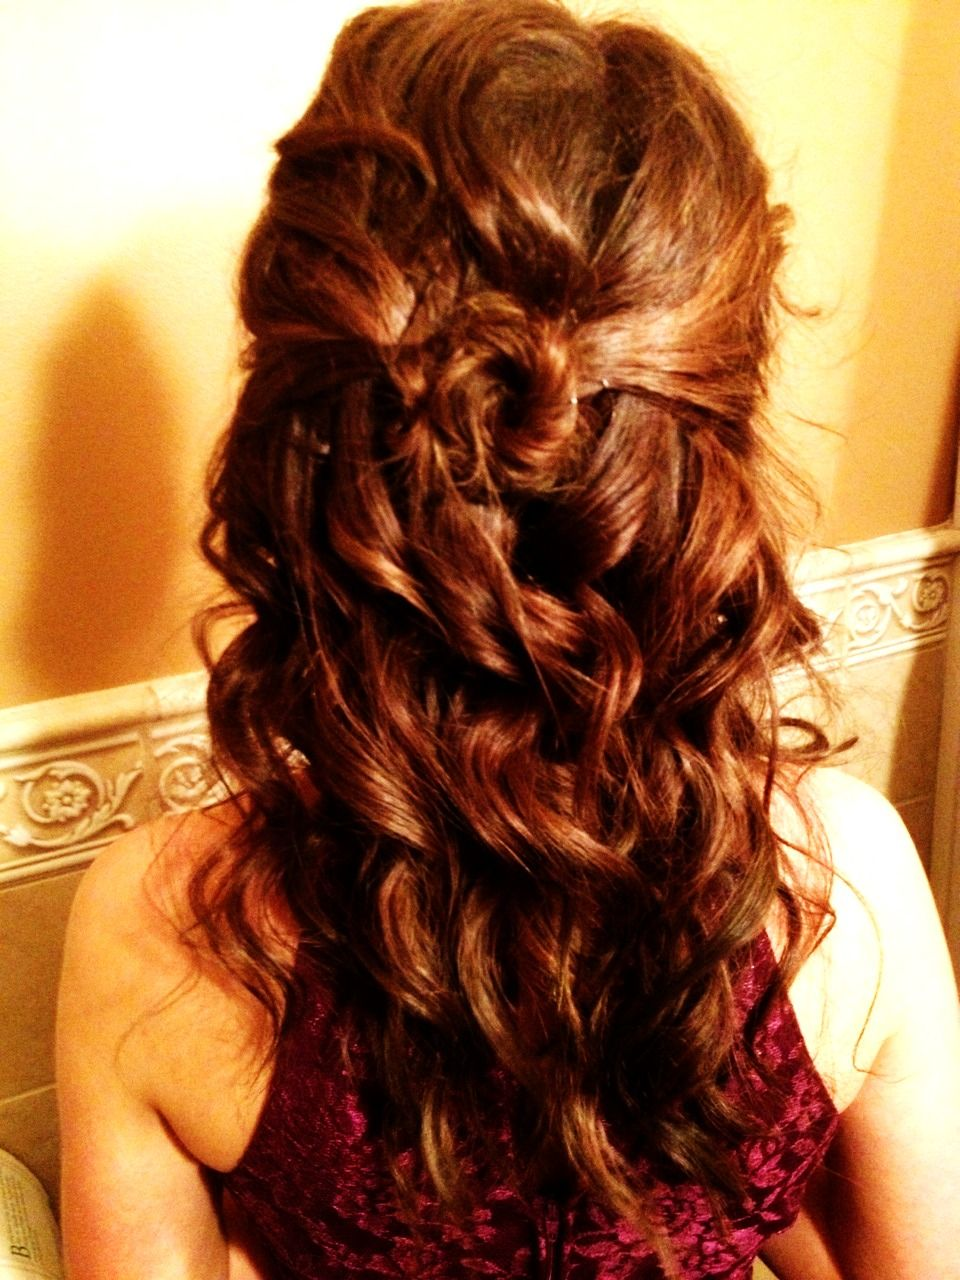 a hairstyle i did for madeline's christmas ball. <3